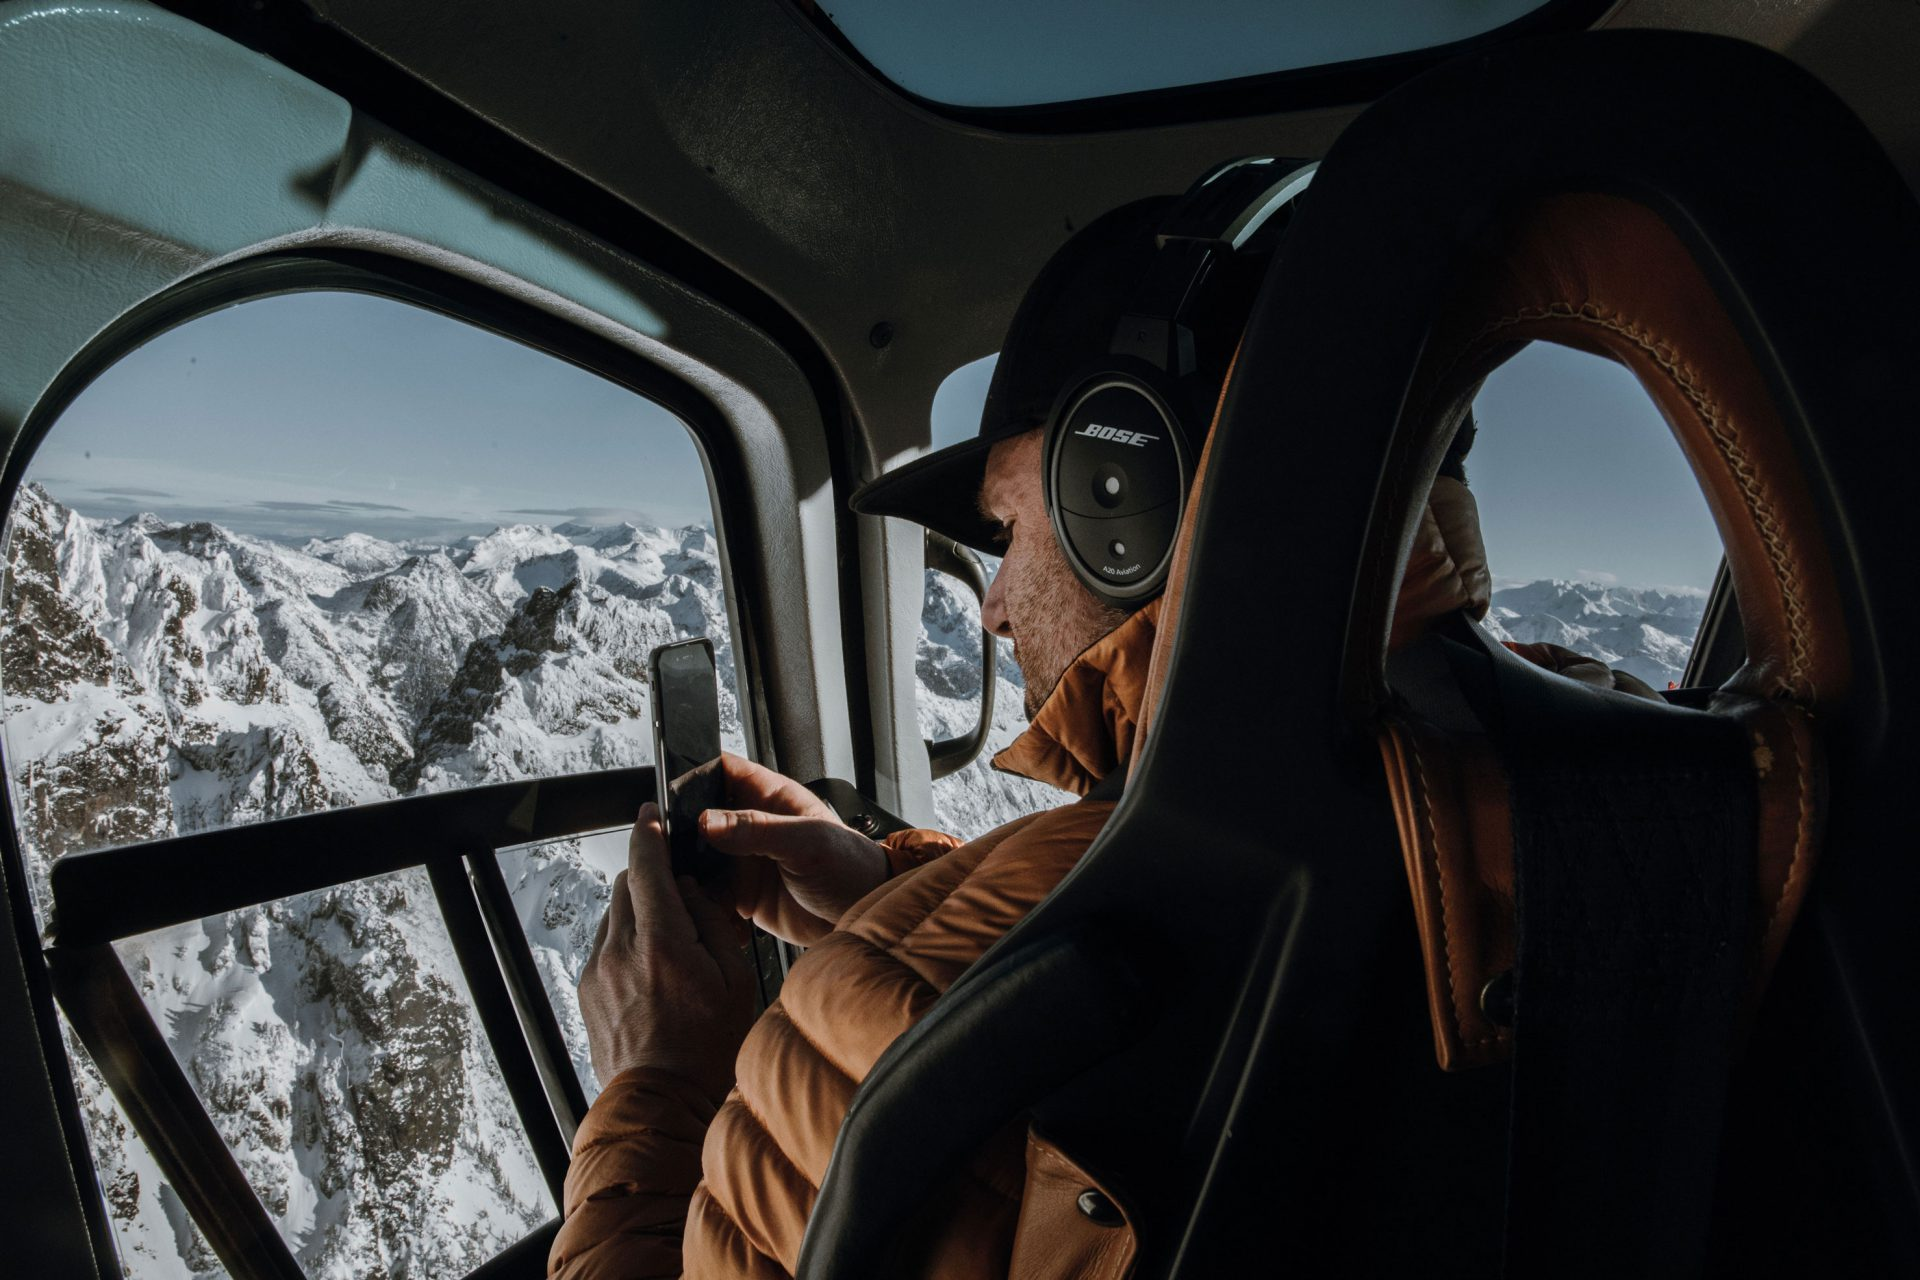 Amazing scenic view with Librico's Adam Palmer taking a picture while on a heli-tour near Vancouver, BC.